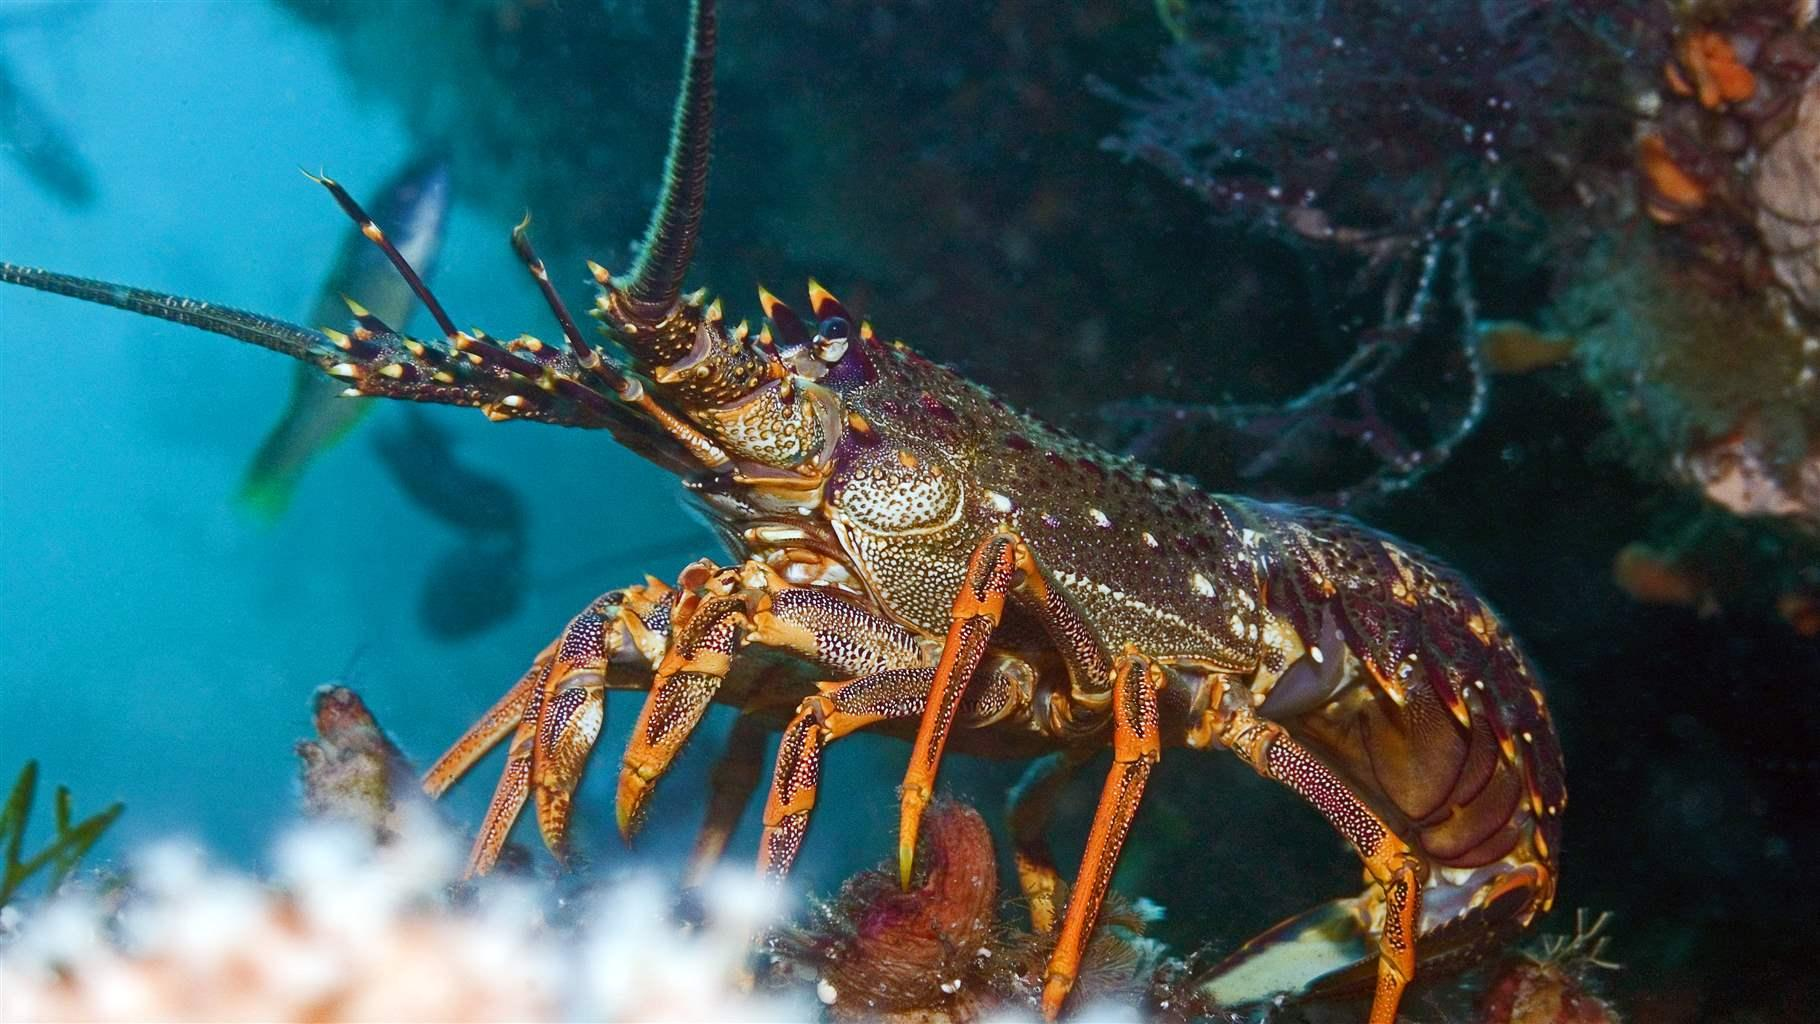 The giant spiny lobster